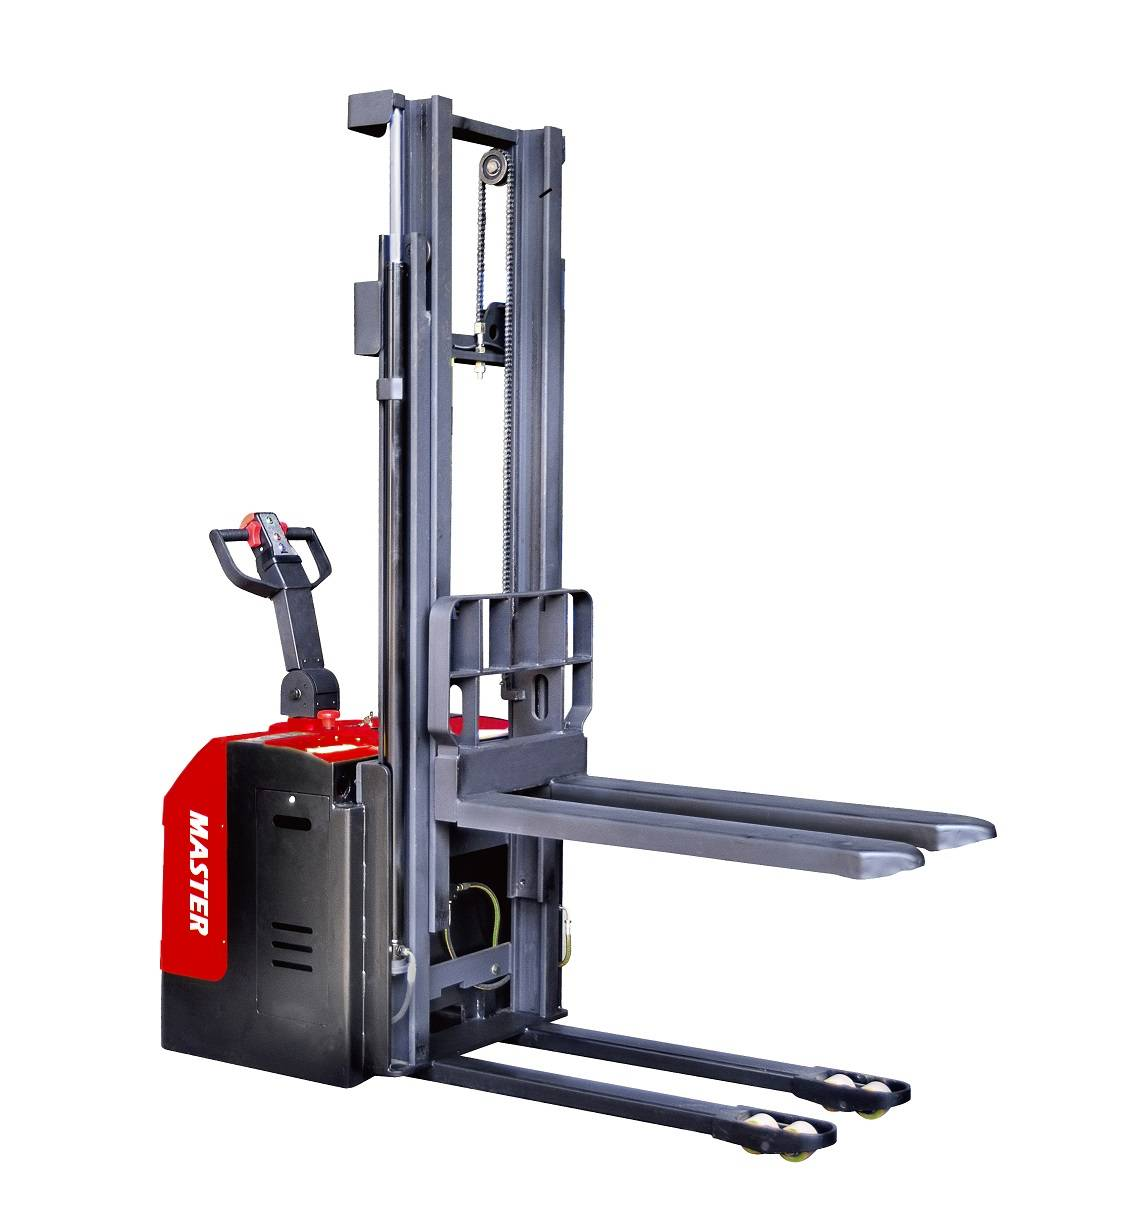 Master Forklift - 1.0-1.5 ton Electric Stacker